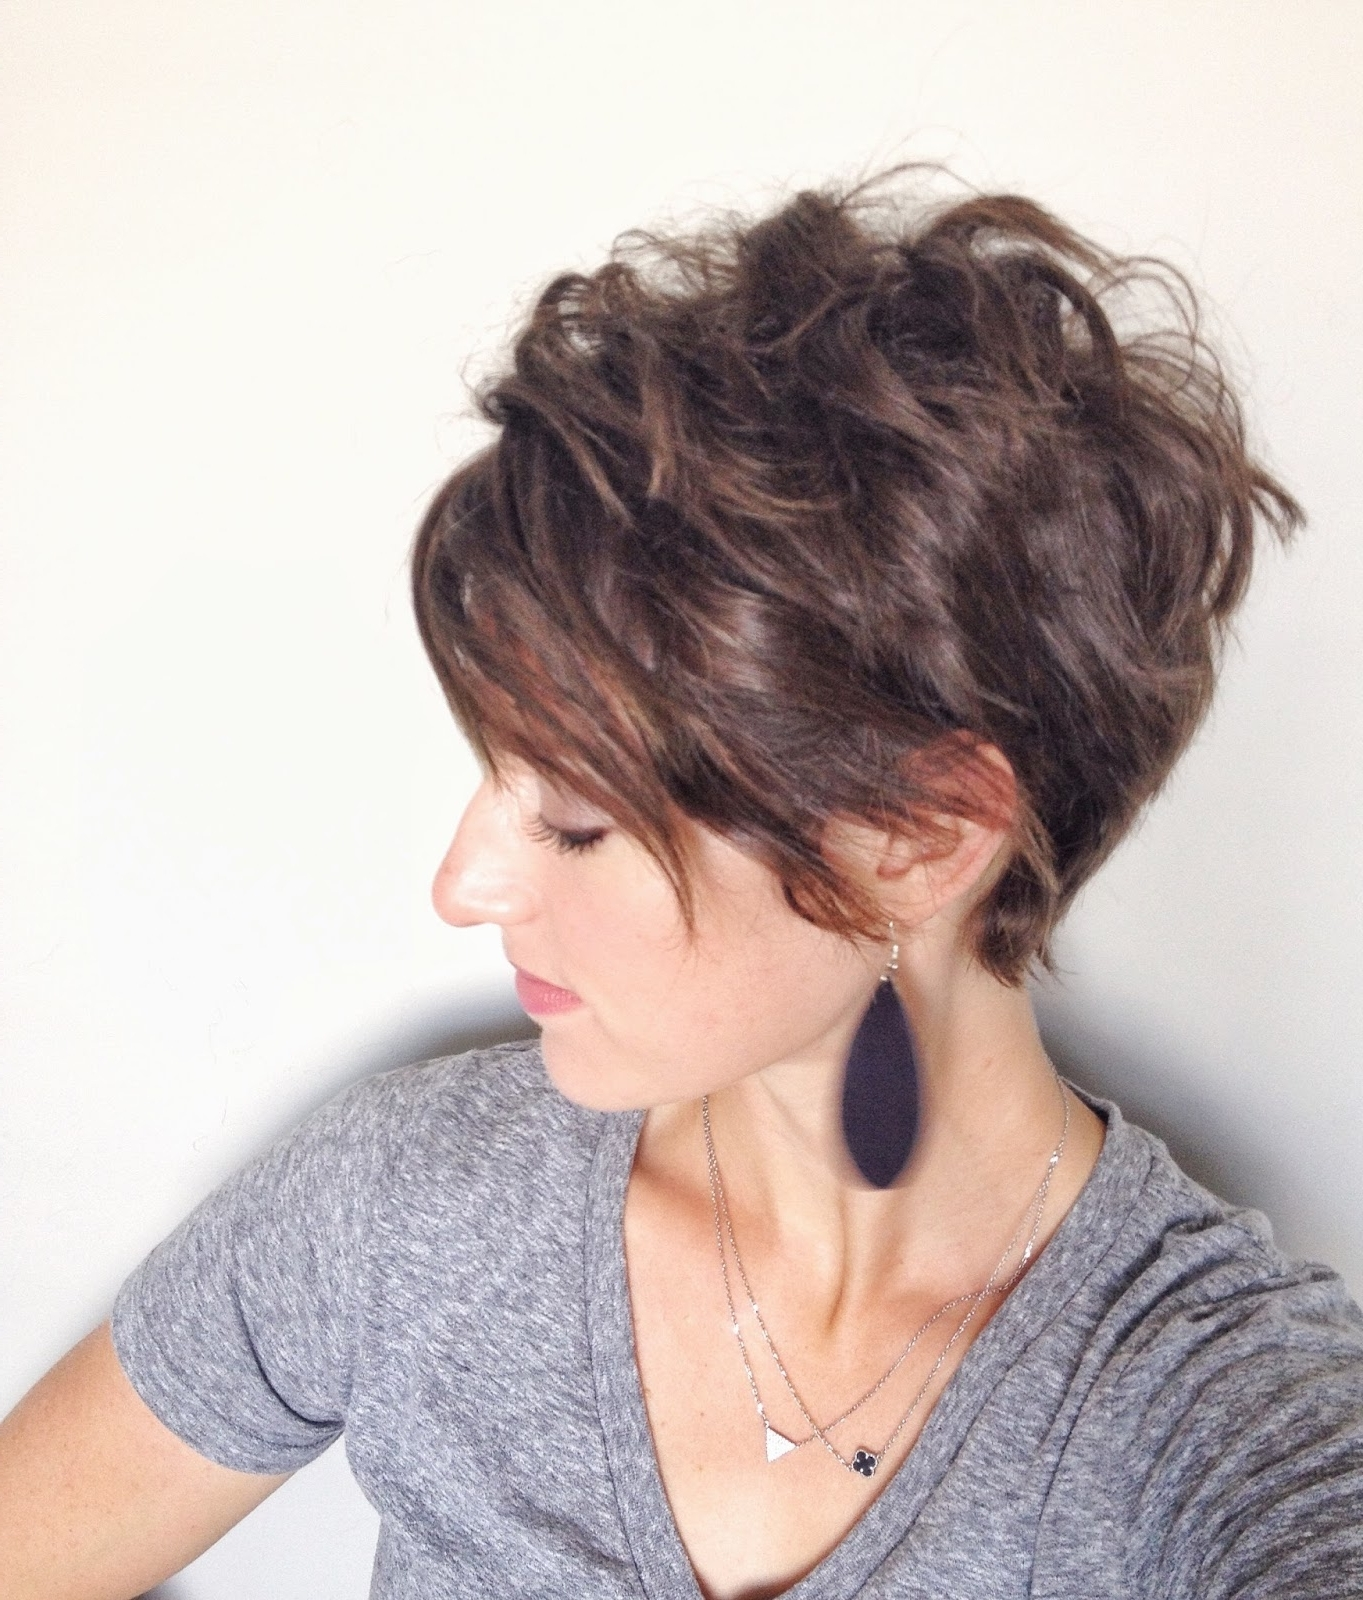 Maybe Matilda: Asymmetrical Pixie Cut | Hairstyles I Like In 2018 Long Pixie Hairstyles For Curly Hair (View 15 of 15)